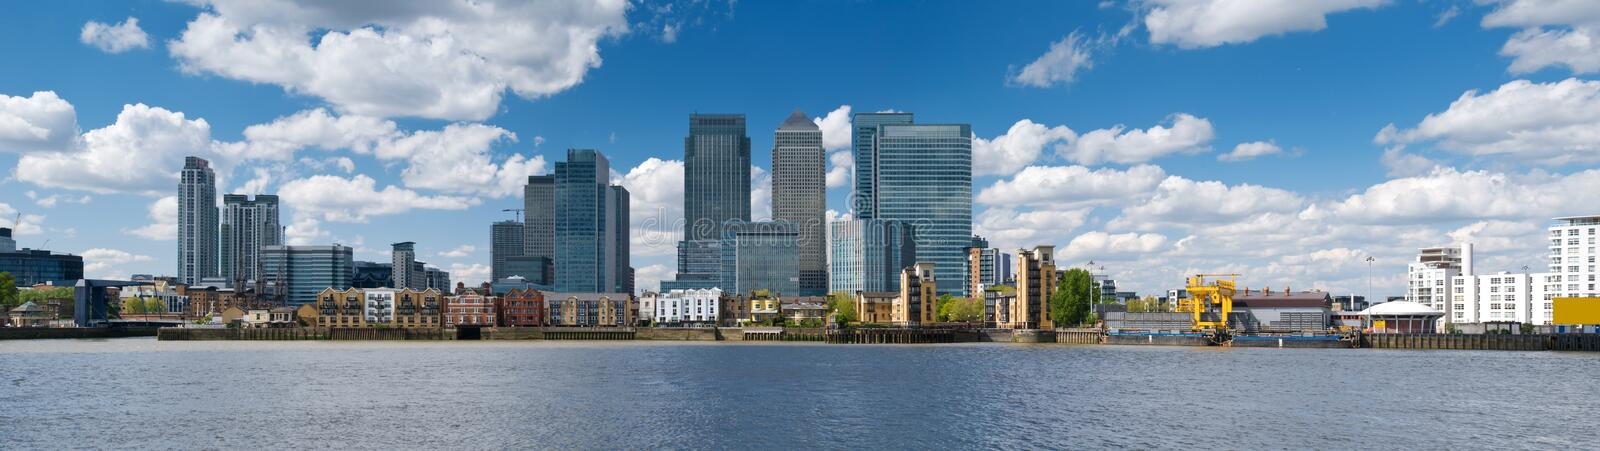 Download Canary Wharf Skyline stock image. Image of canary, landmark - 9277515